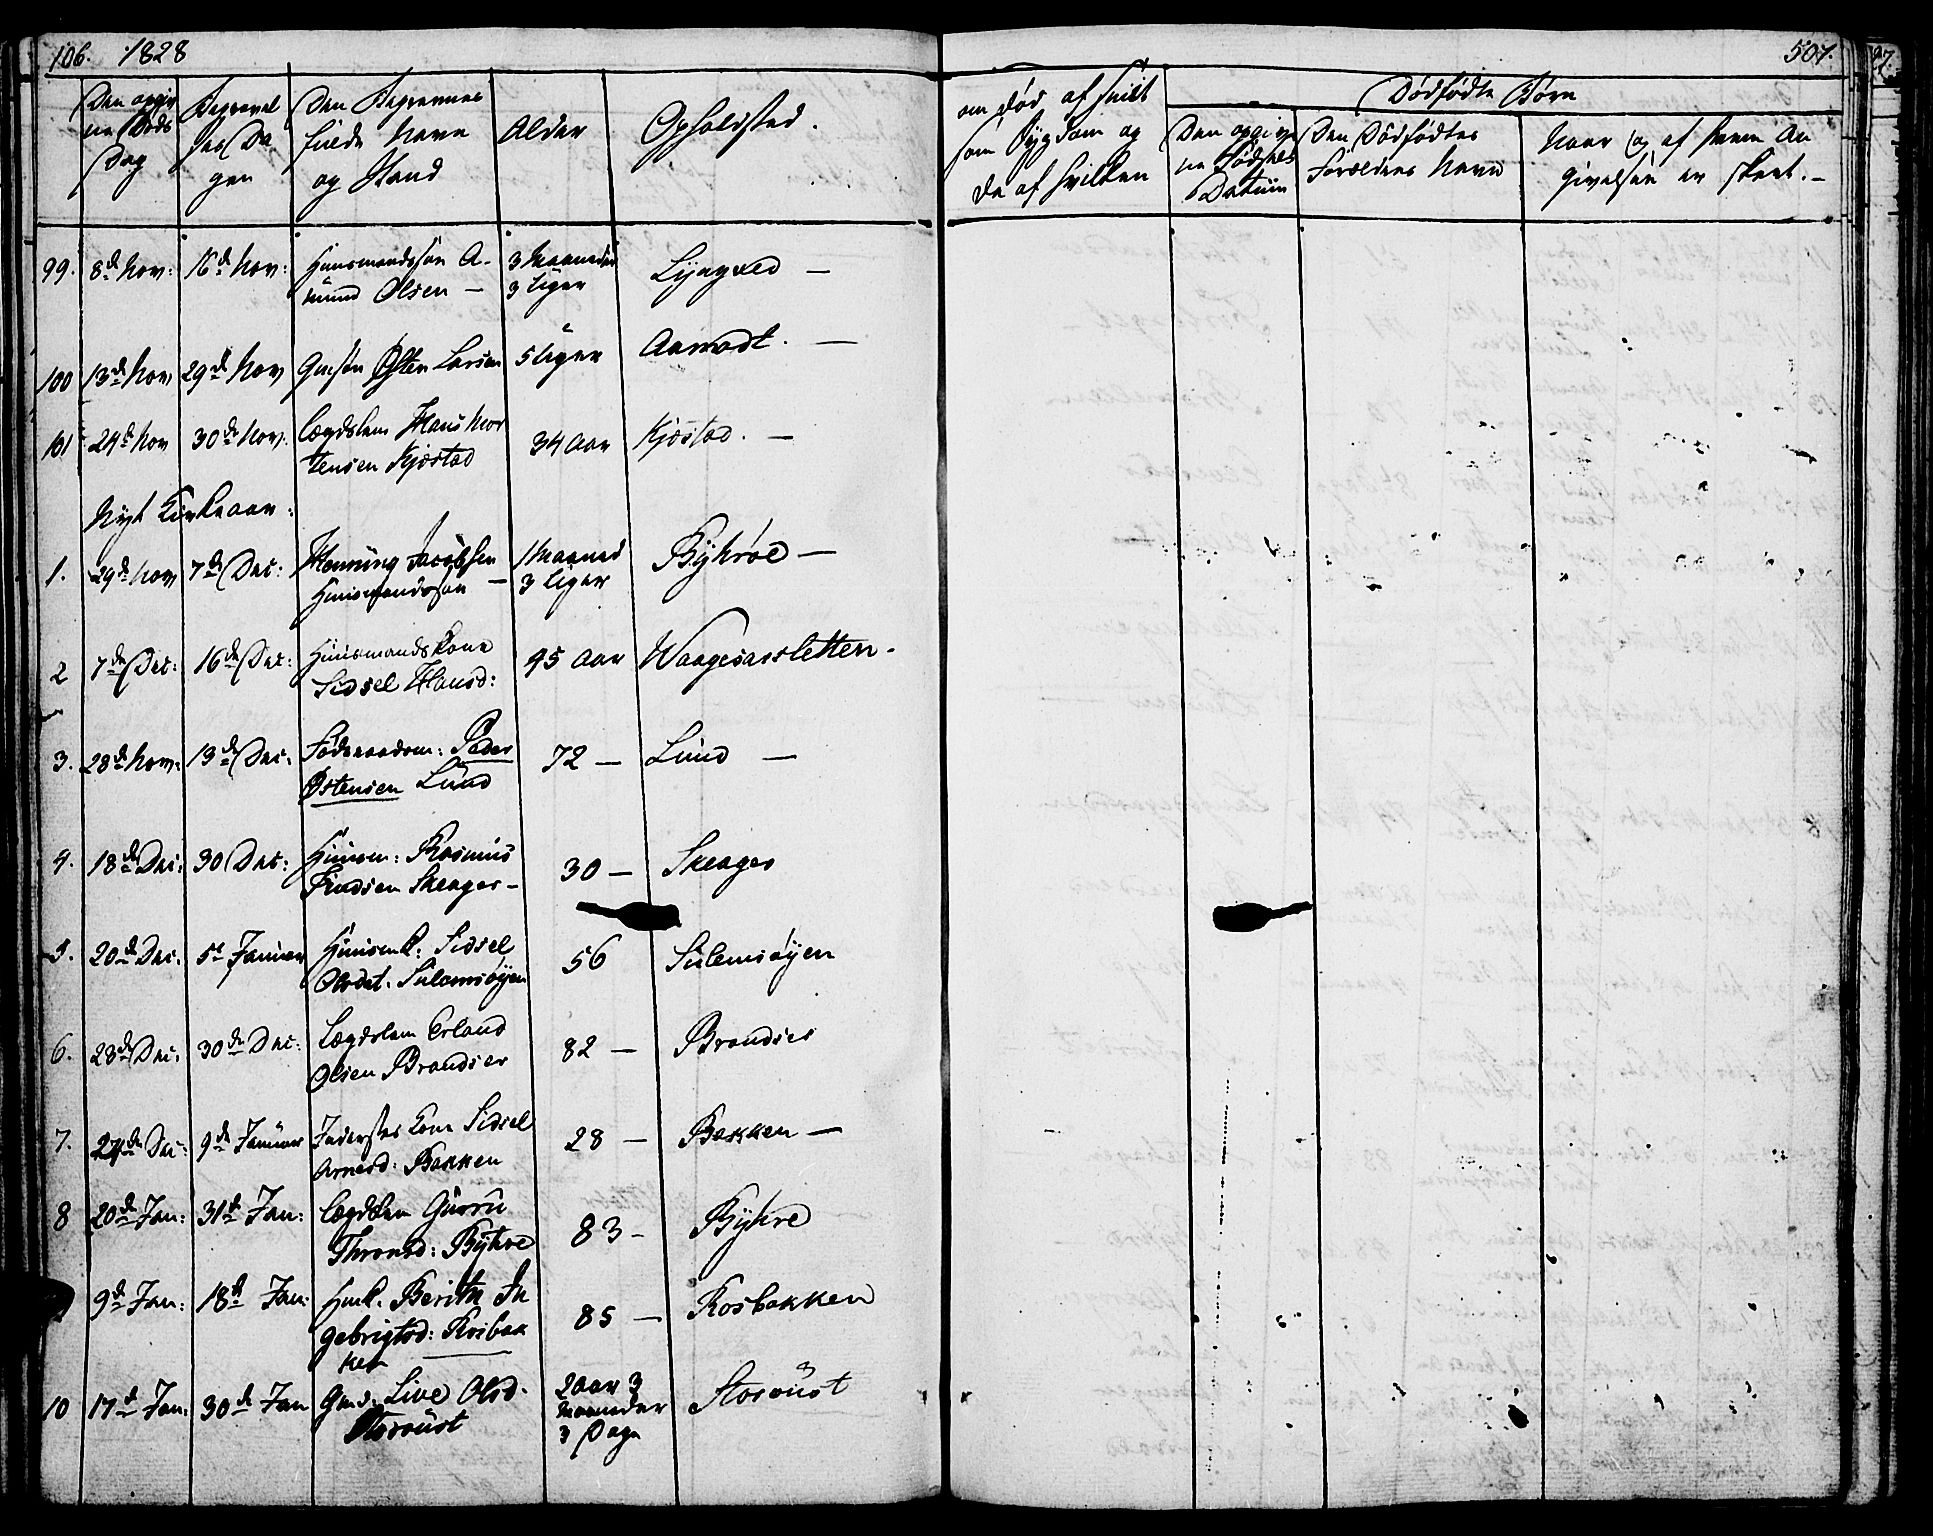 SAH, Lom prestekontor, K/L0005: Parish register (official) no. 5, 1825-1837, p. 506-507